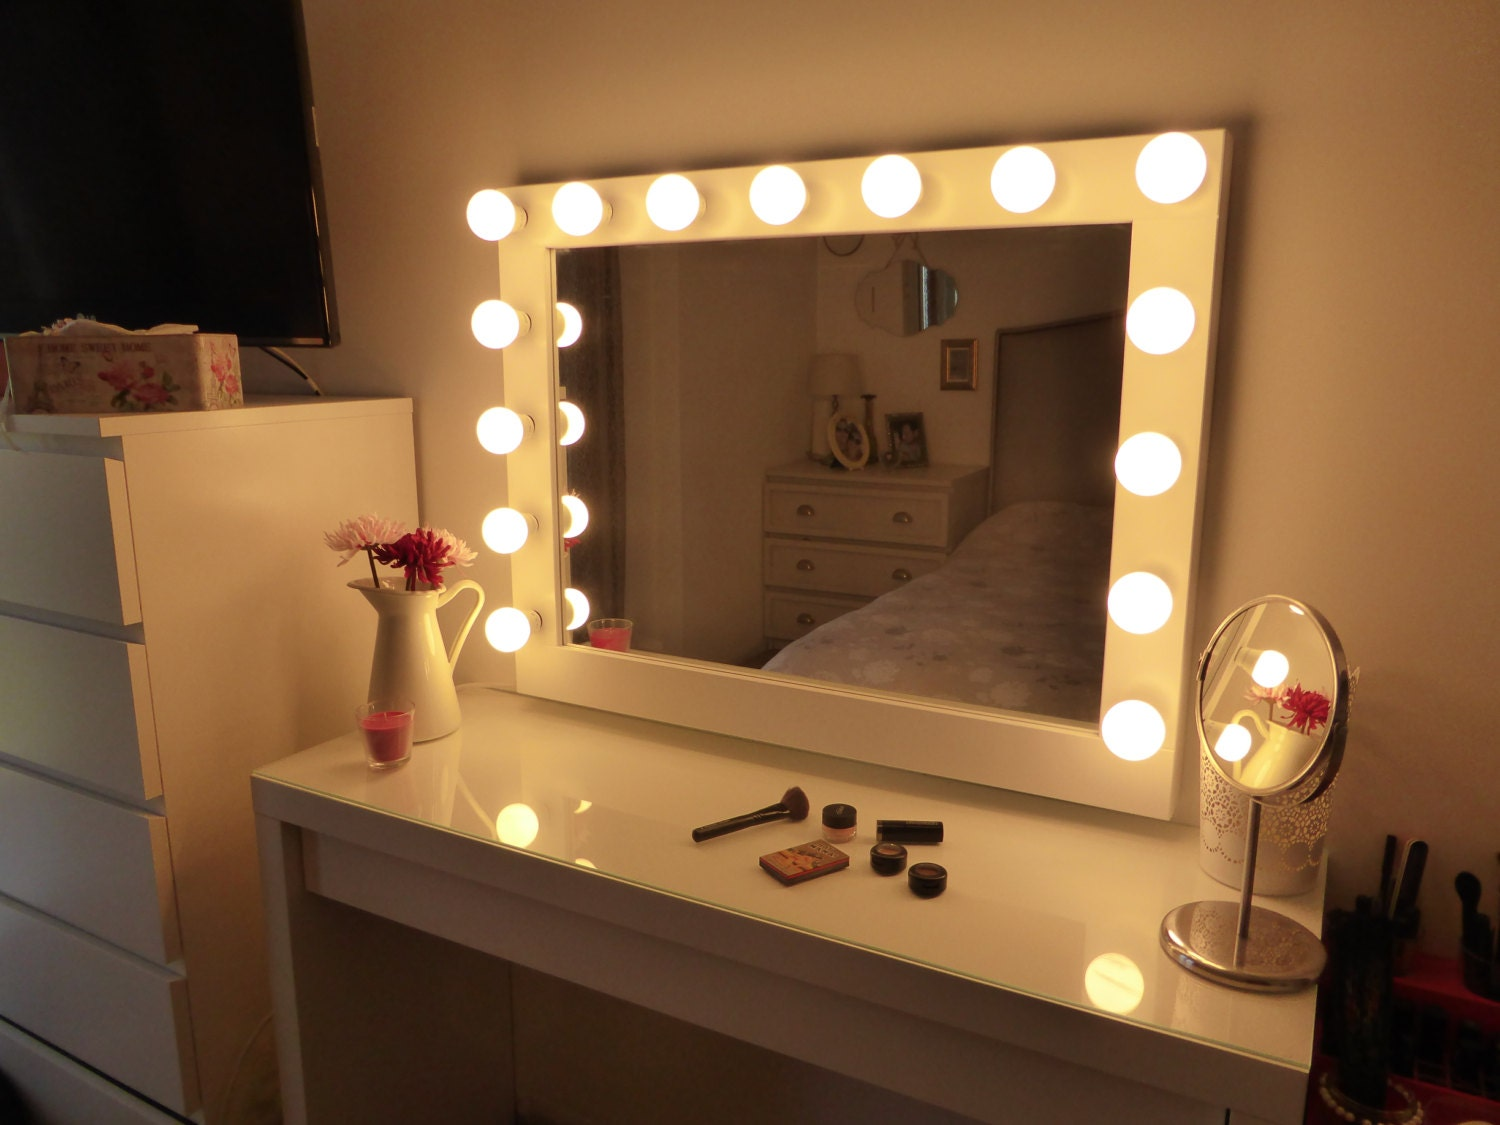 Vanity Mirror With Lights Sam S Club : Hollywood lighted vanity mirror-large makeup mirror with